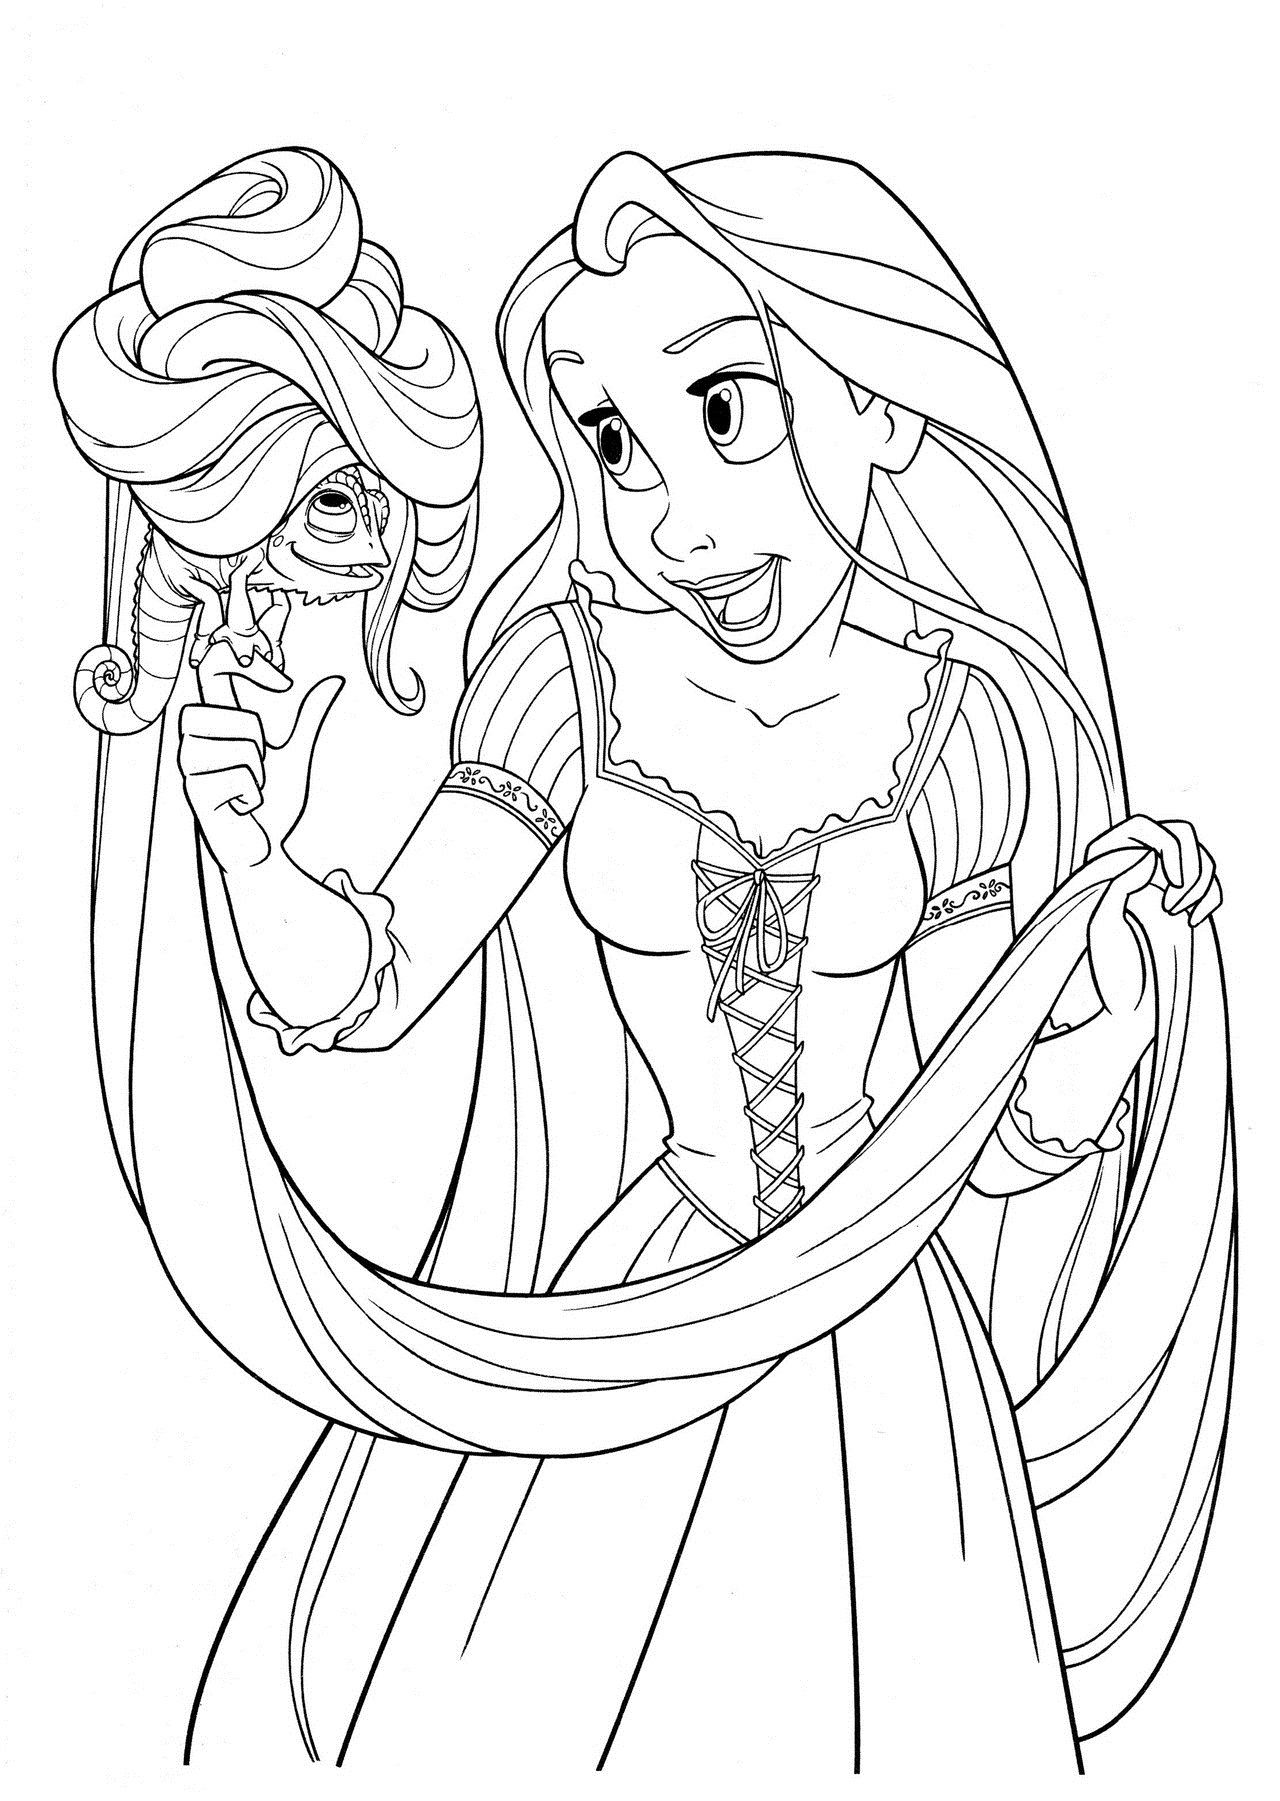 Free Printable Tangled Coloring Pages For Kids Disney tangled